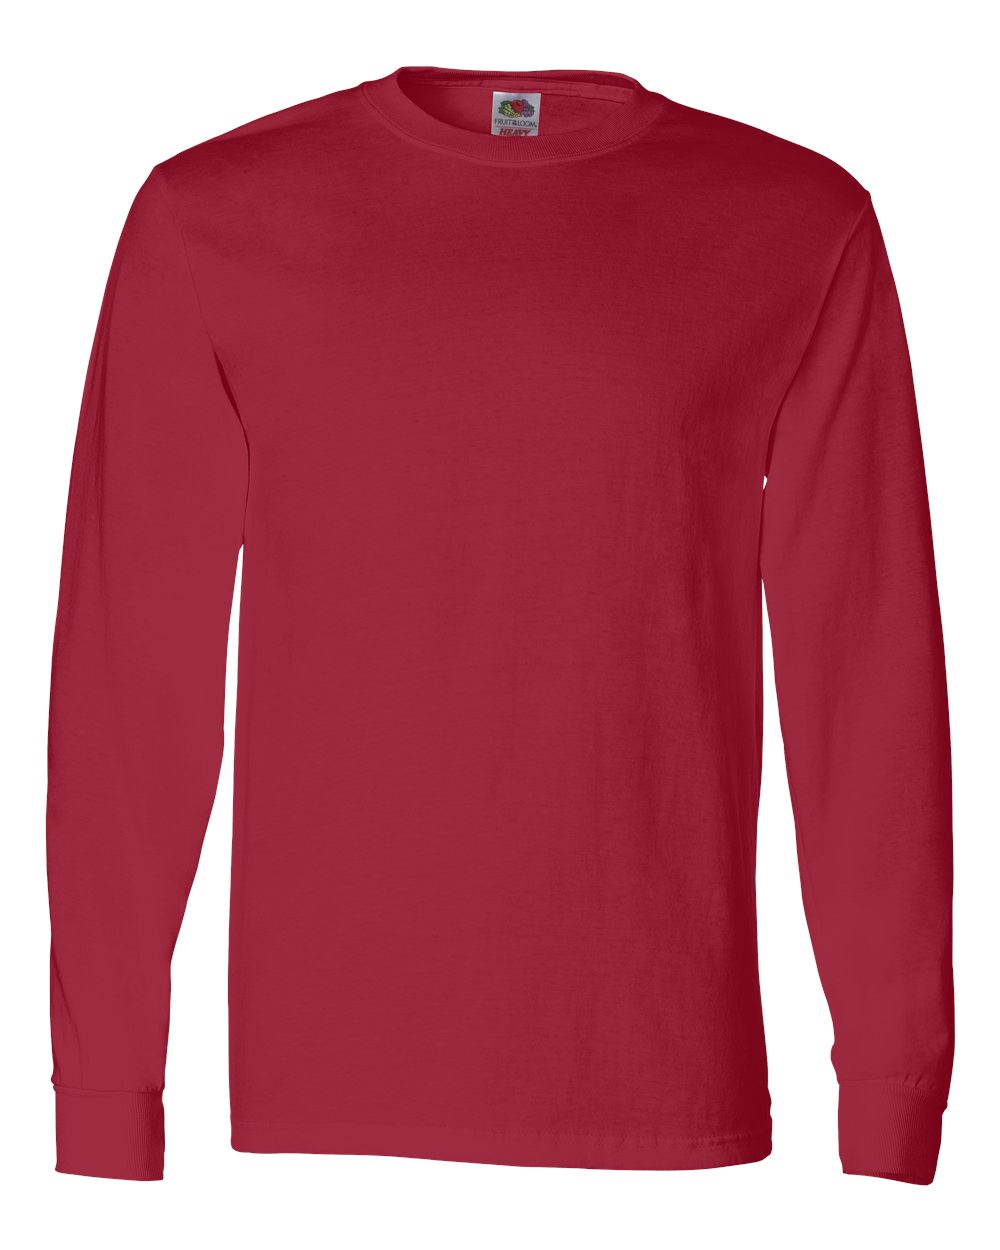 Picture of Fruit Of The Loom HD Cotton Long Sleeve T-Shirt